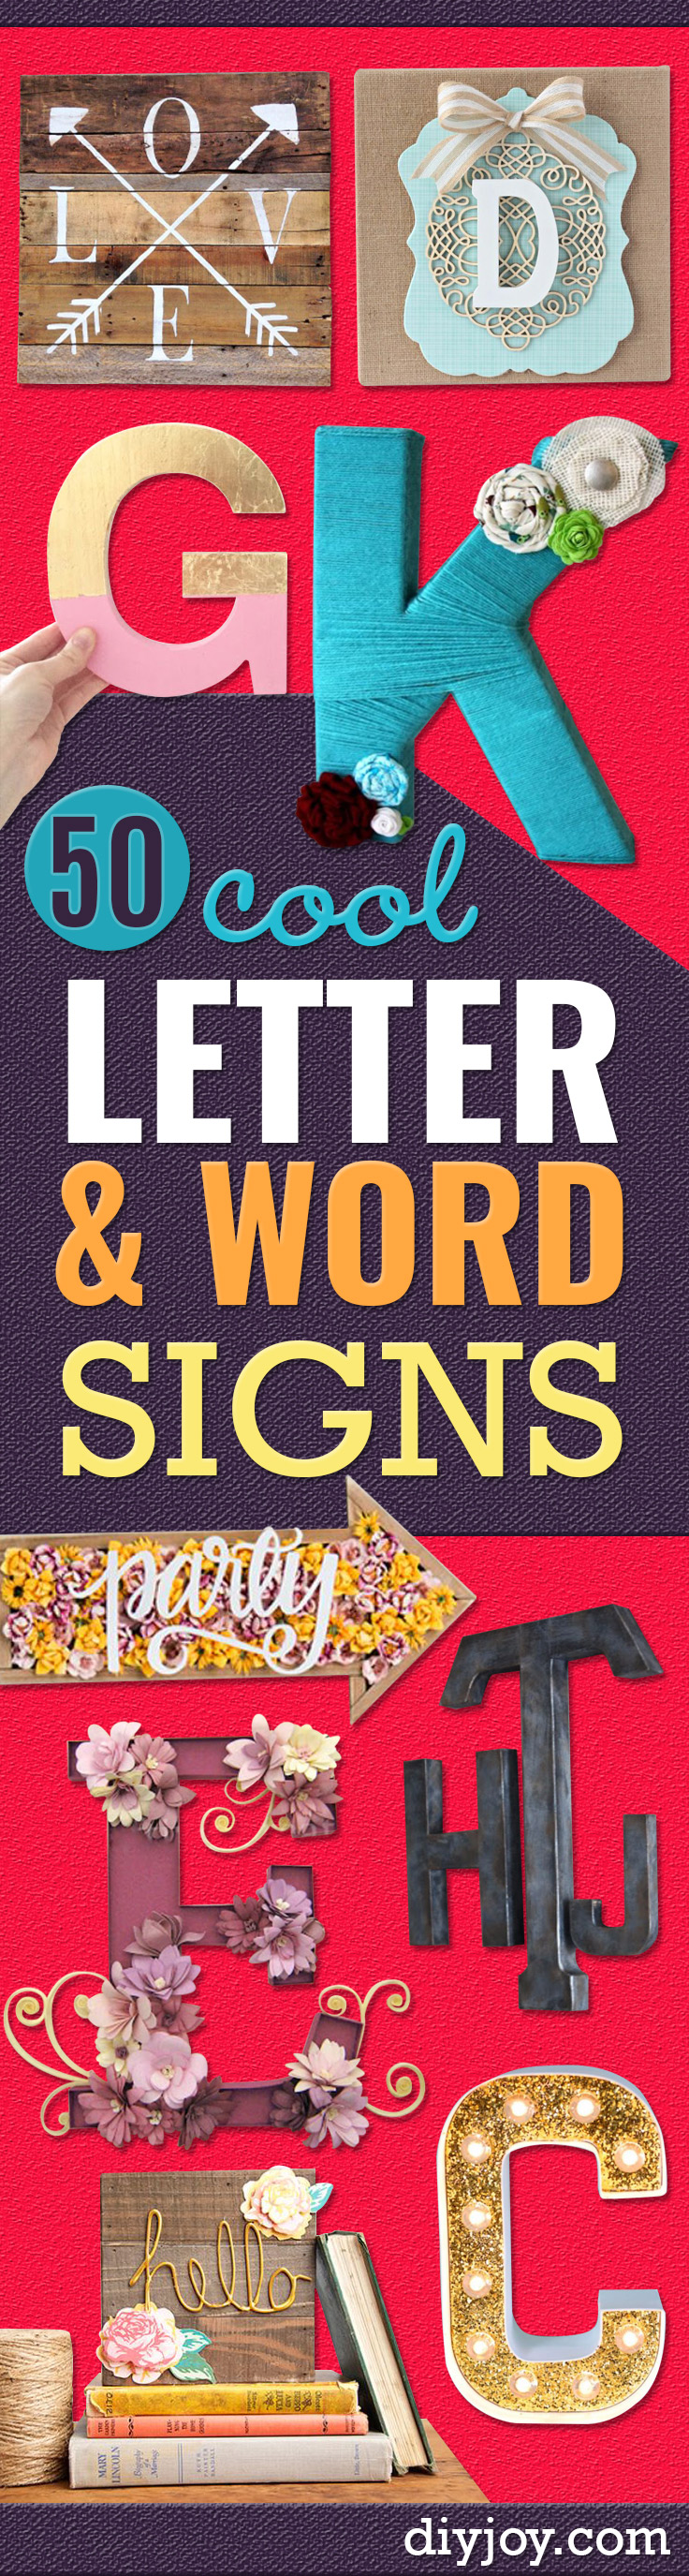 DIY Wall Letters and Word Signs - Initials Wall Art for Creative Home Decor Ideas - Cool Architectural Letter Projects and Wall Art Tutorials for Living Room Decor, Bedroom Ideas. Girl or Boy Nursery. Paint, Glitter, String Art, Easy Cardboard and Rustic Wooden Ideas - DIY Projects and Crafts by DIY JOY